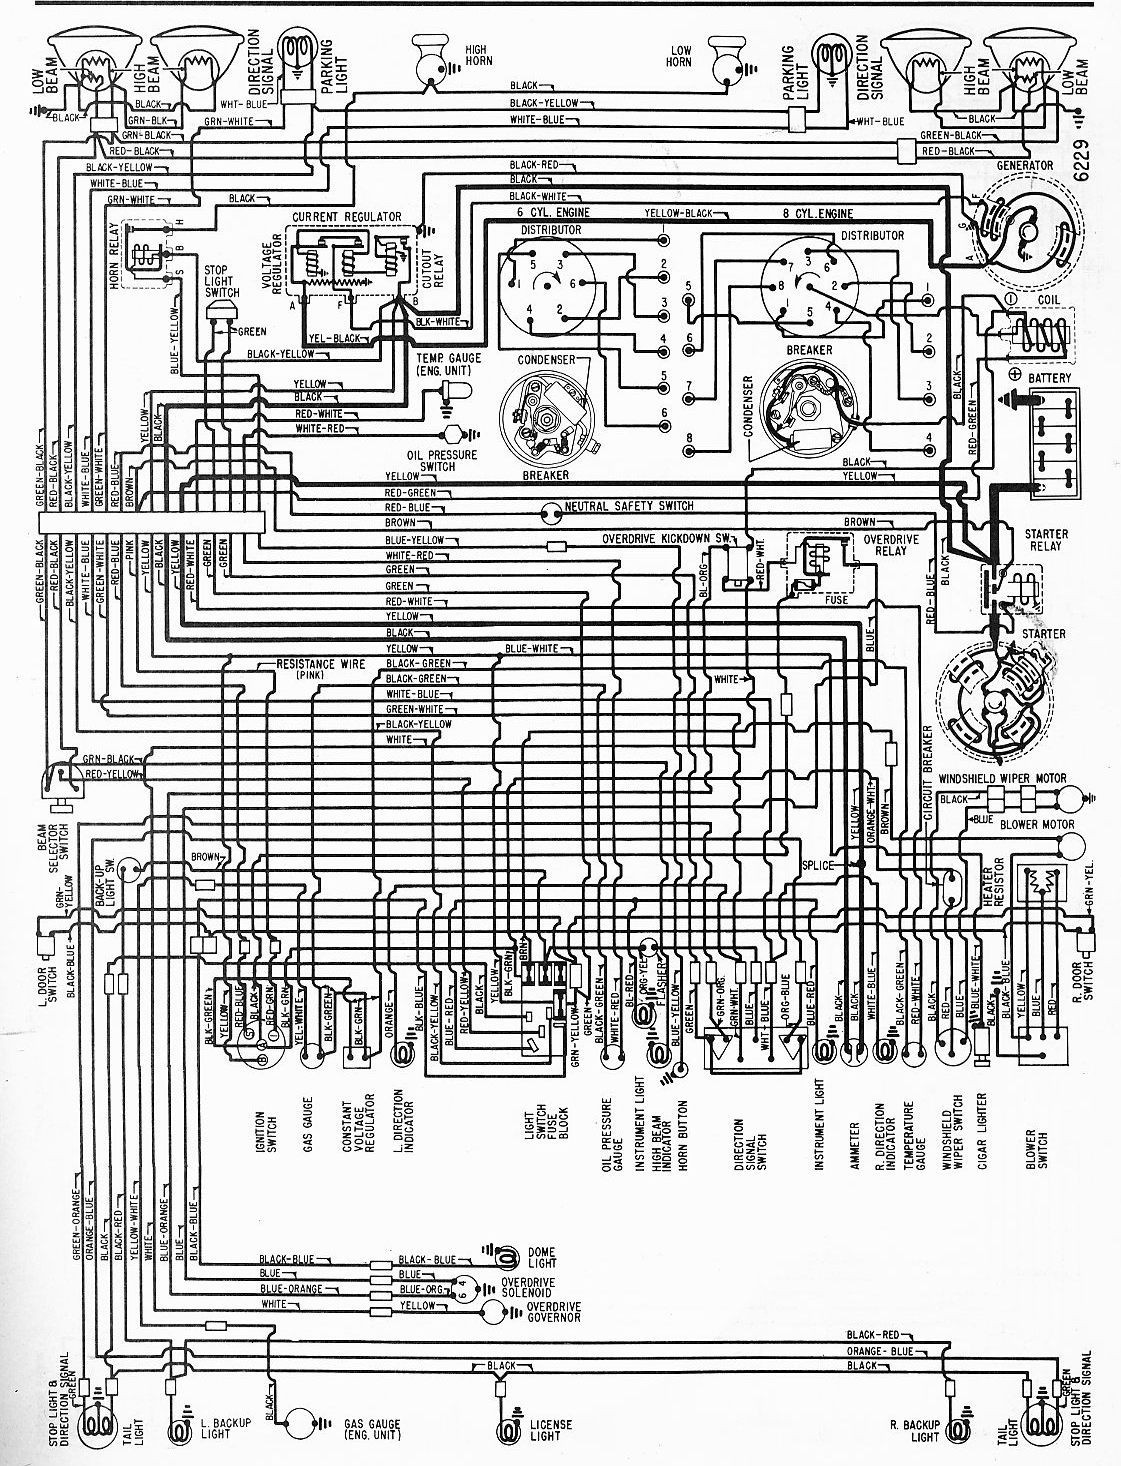 1967 ford f100 wiring diagram wiring diagram image coil resistor wiring diagram diagram 1970 ford f100 find a guide with wiring diagram images rh ayseesra co